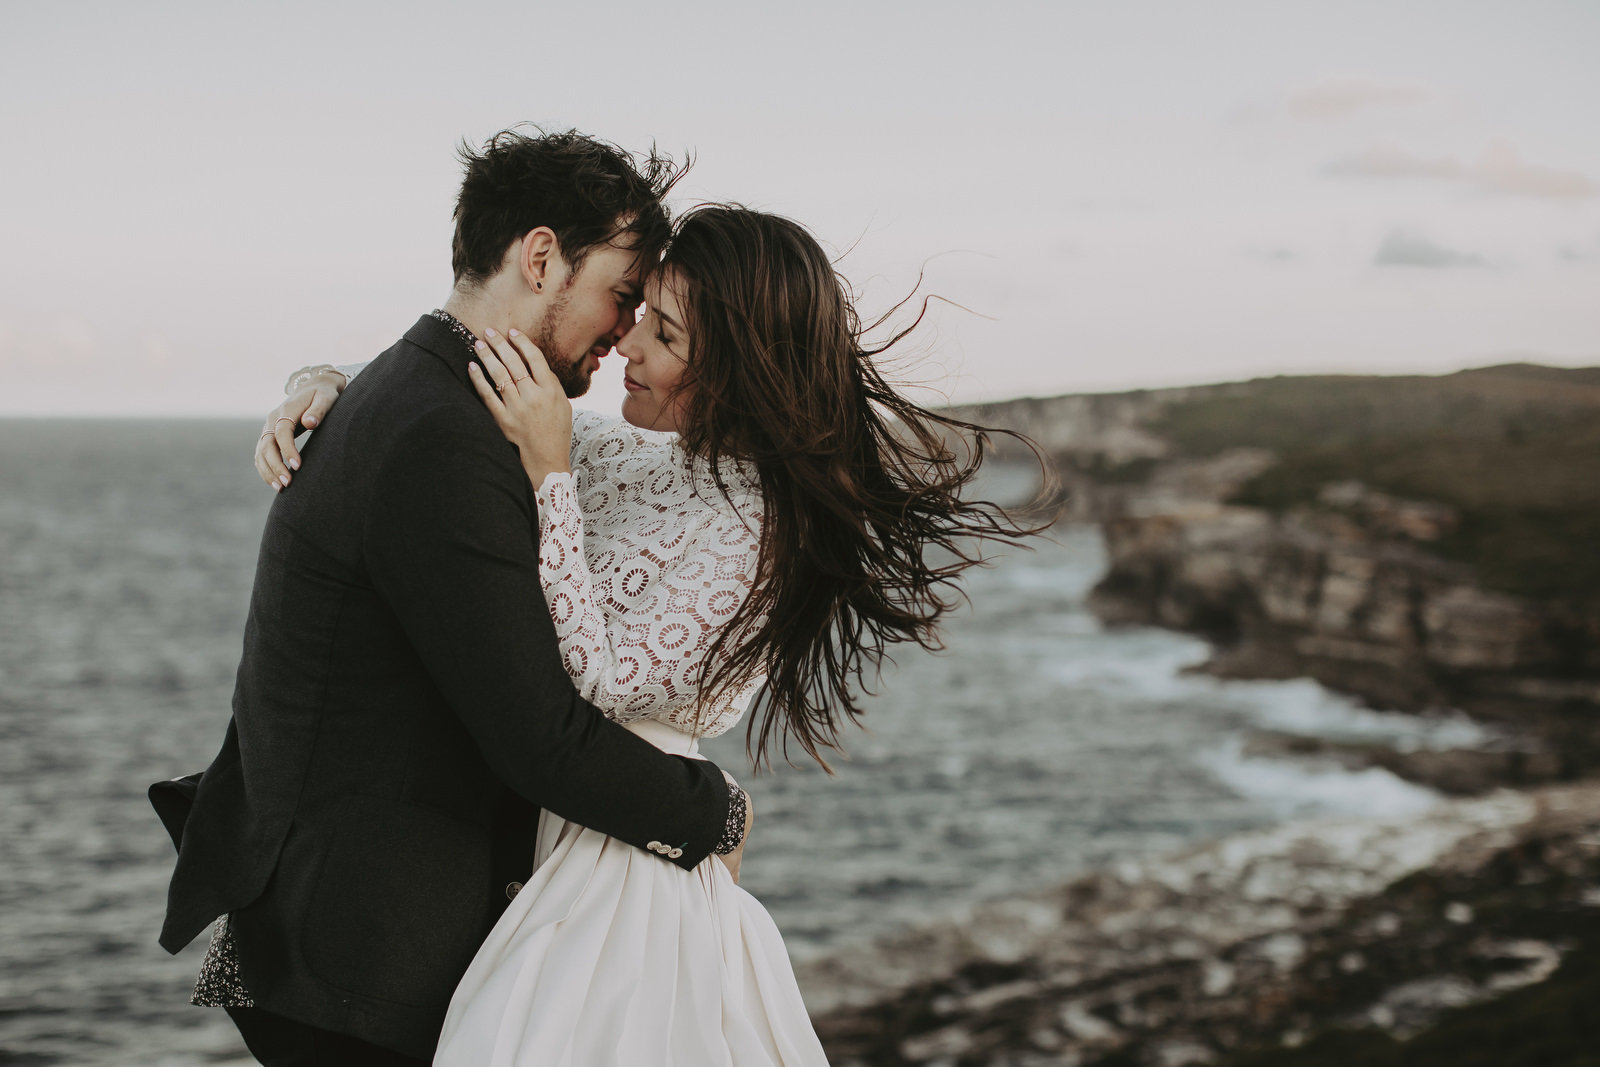 athena-and-camron-sydney-wedding-boho-romance-james-simmons-photography-christian-couple-goals100